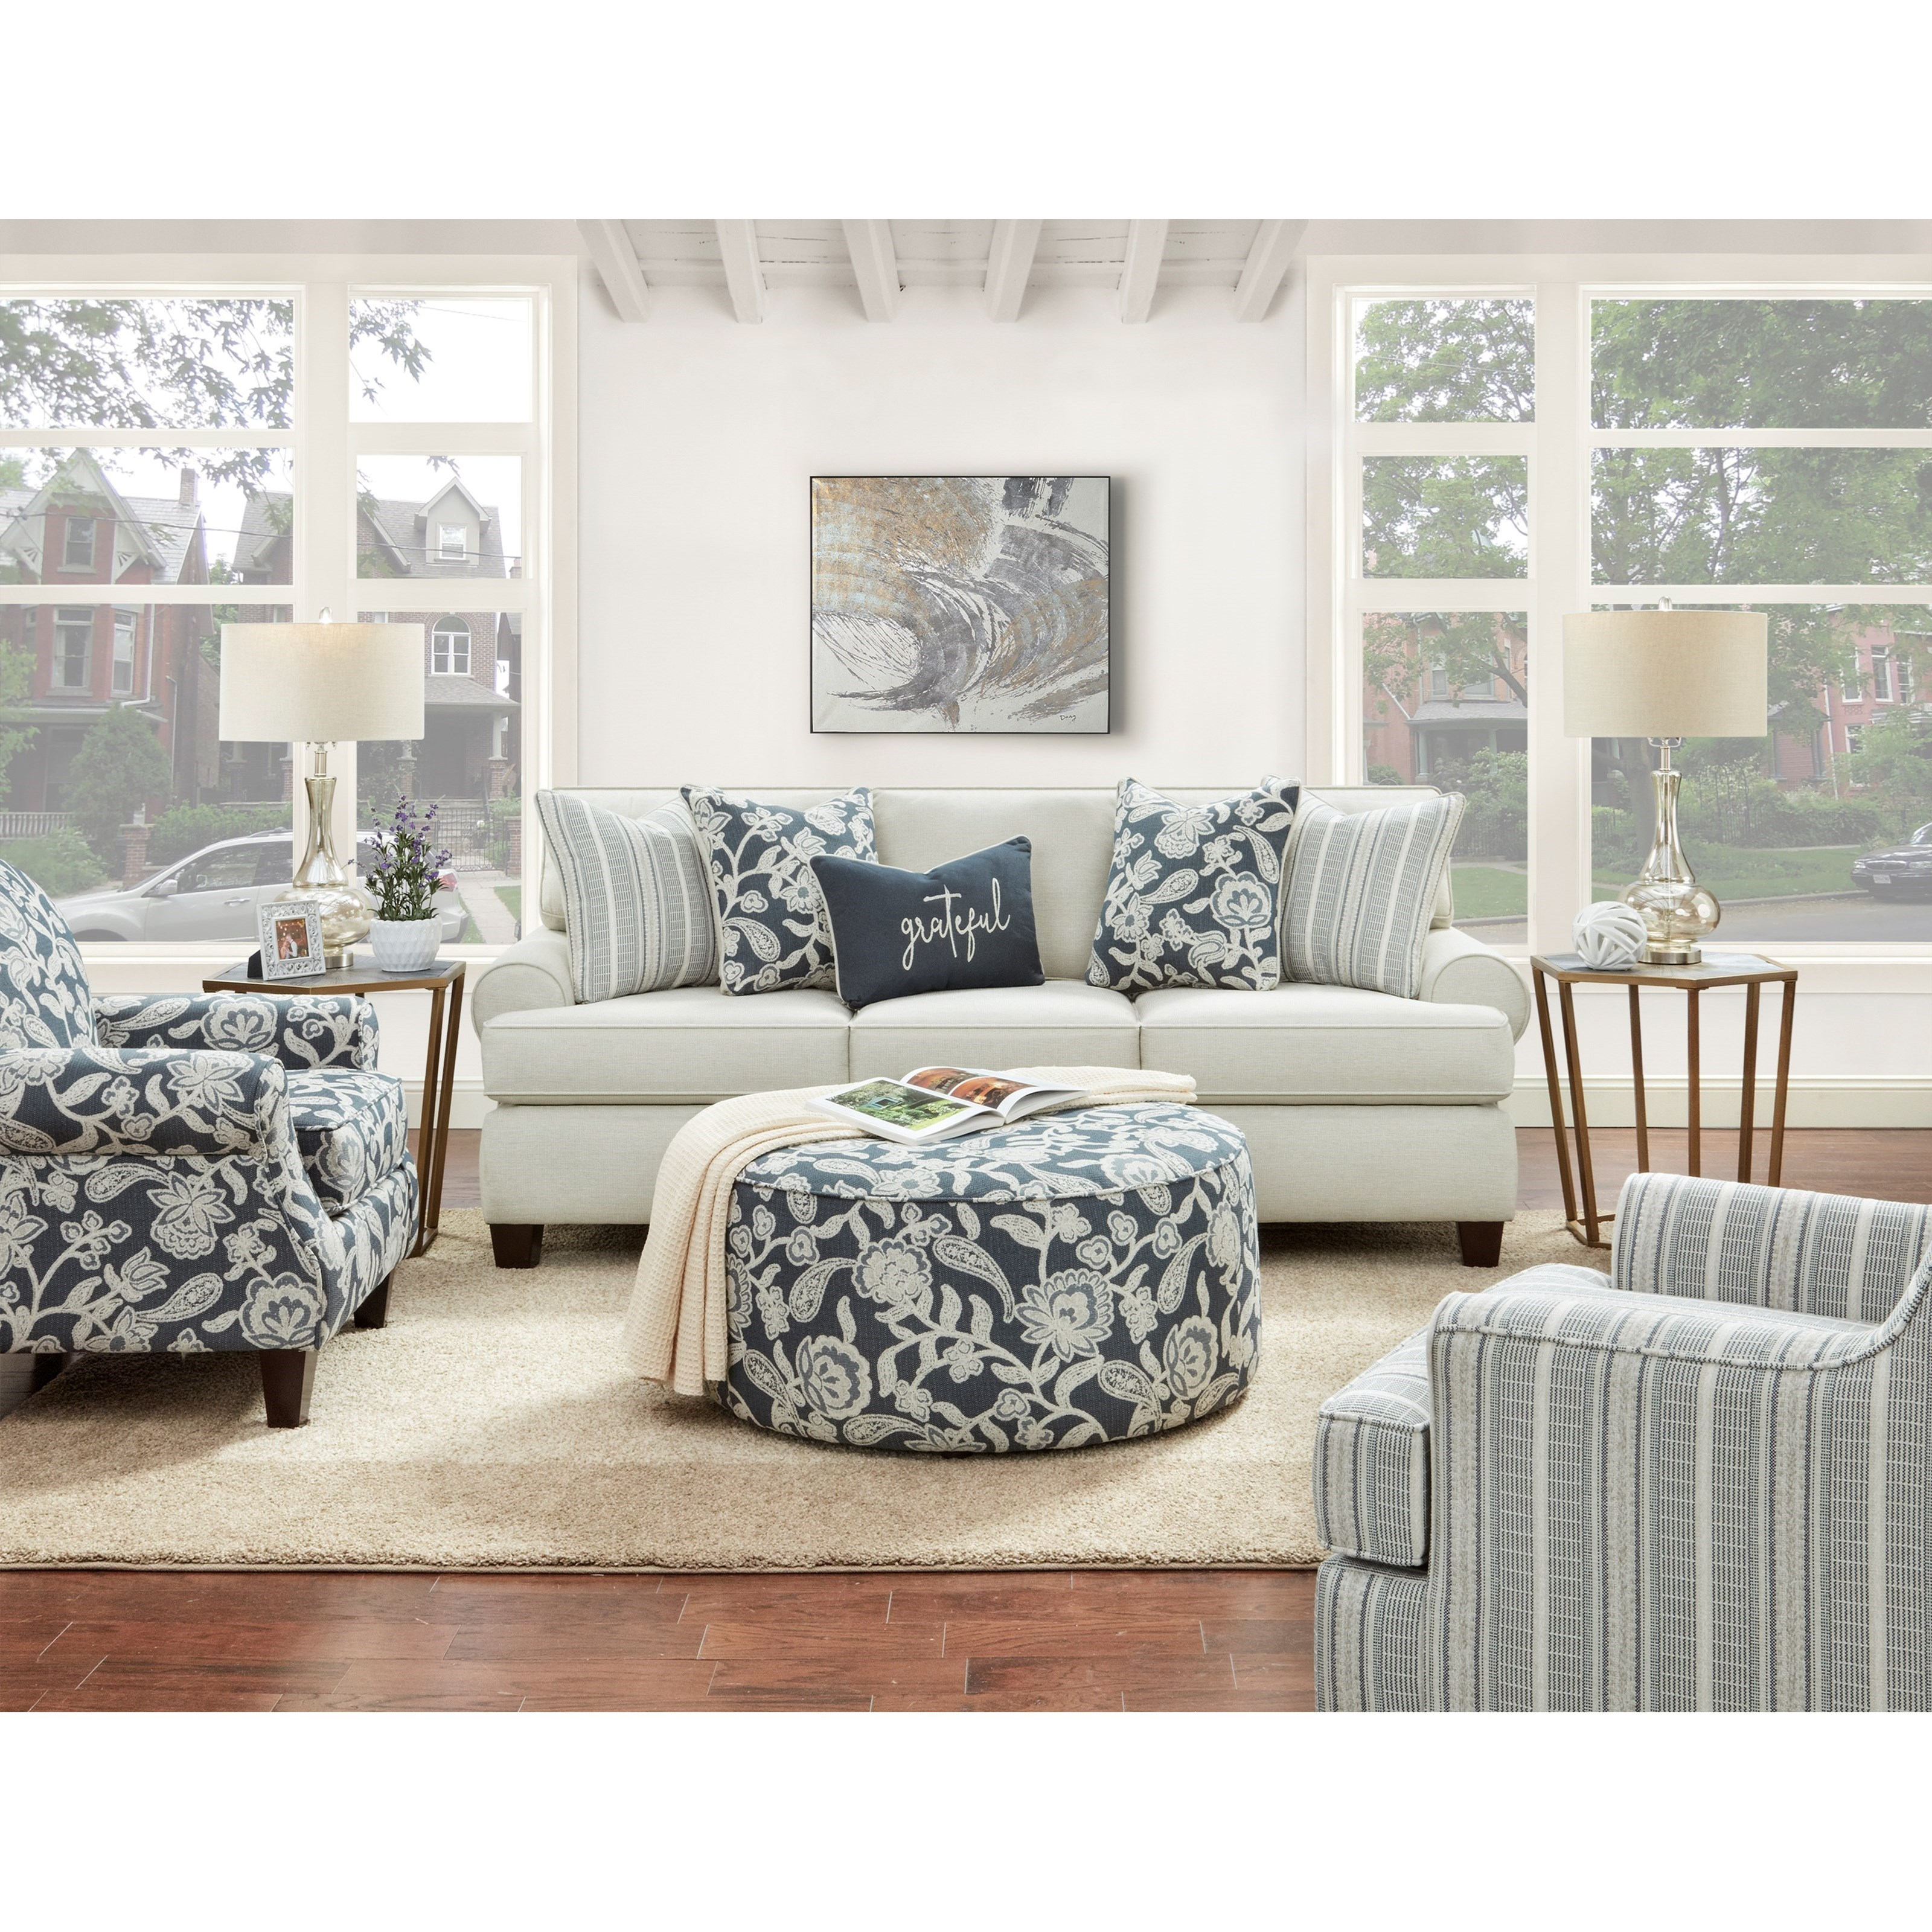 39-00 Living Room Group by Fusion Furniture at Prime Brothers Furniture